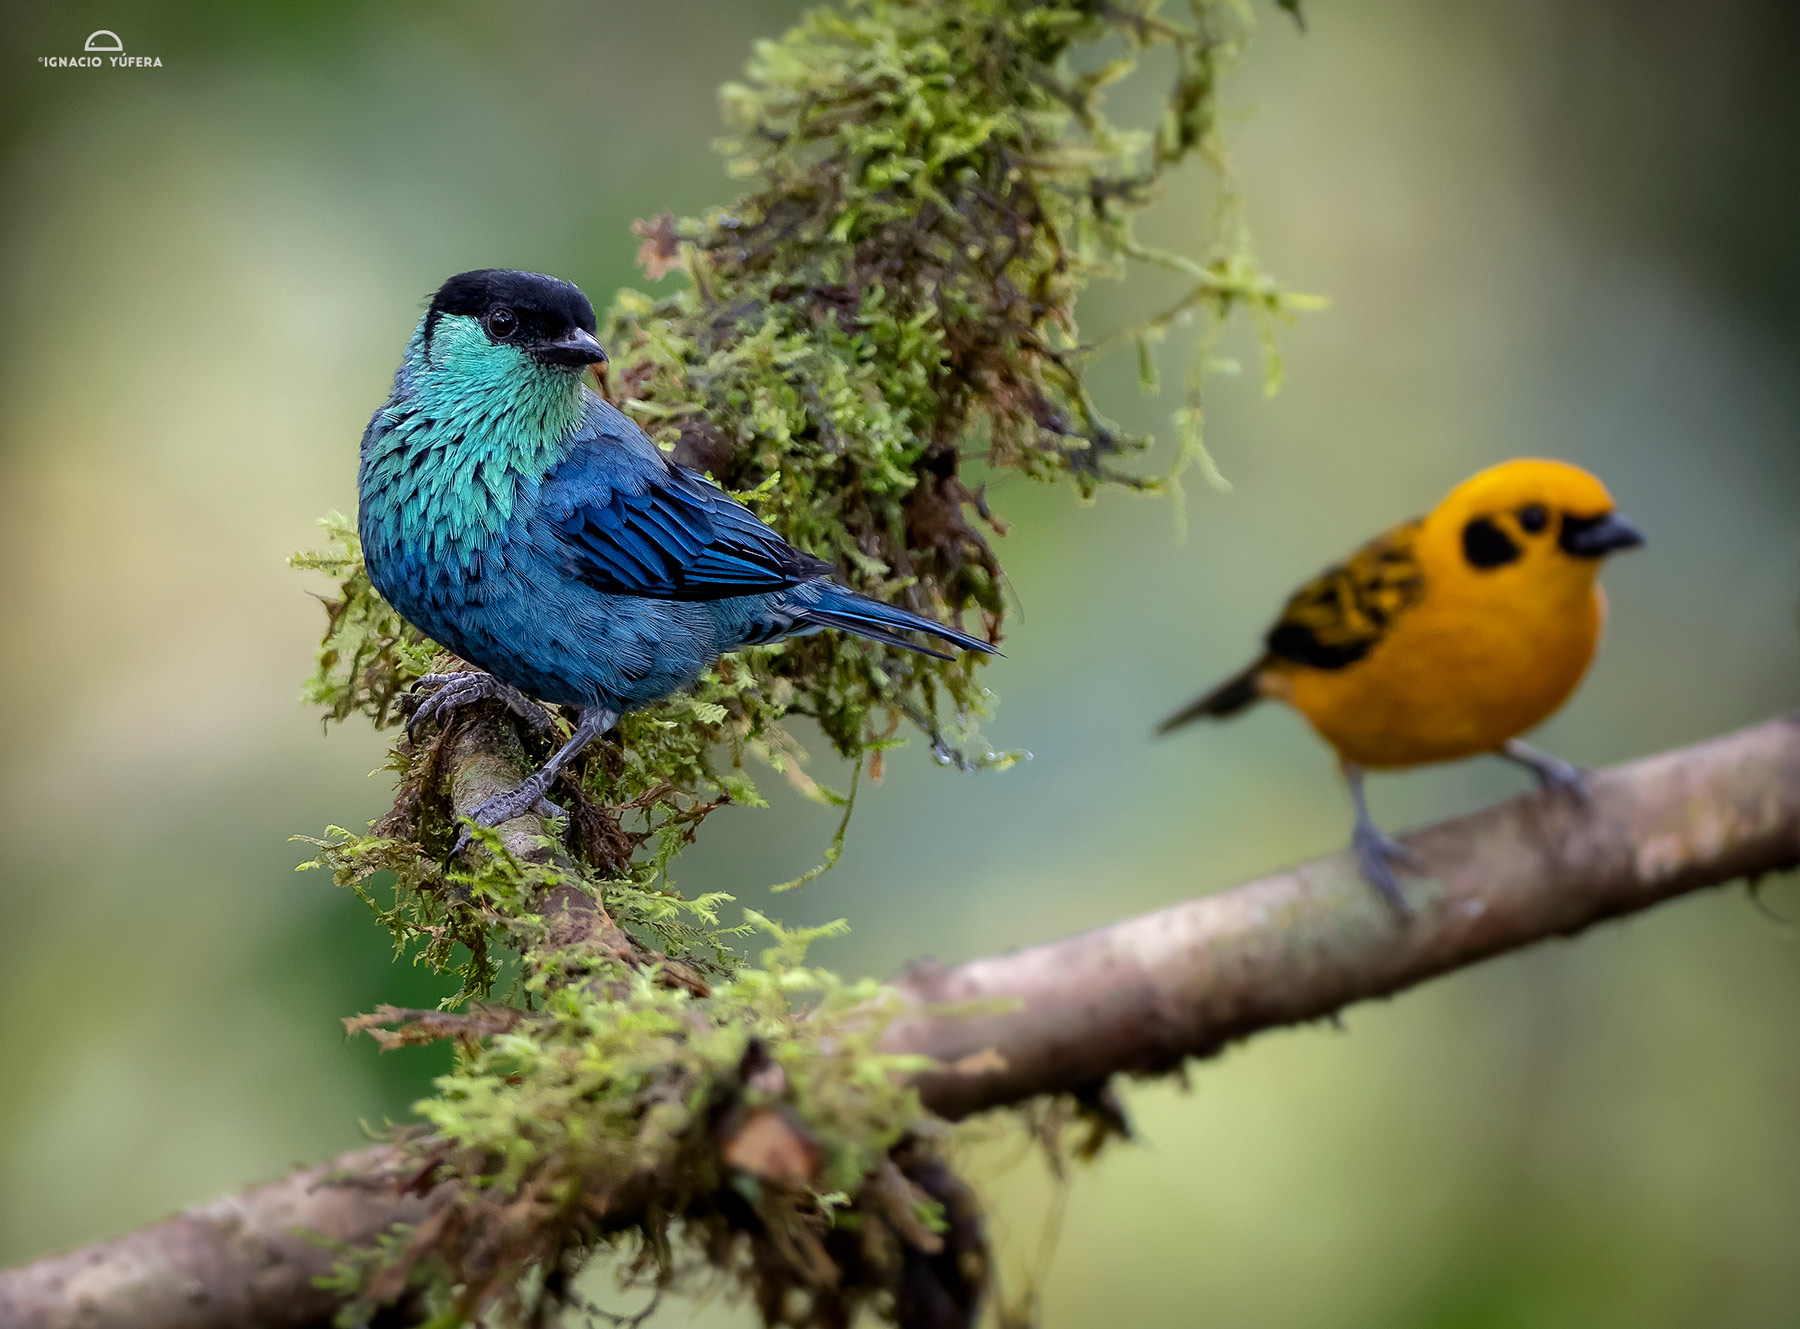 Black-capped Tanager (Tangara heinei) and Golden Tanager, Tandayapa, Ecuador